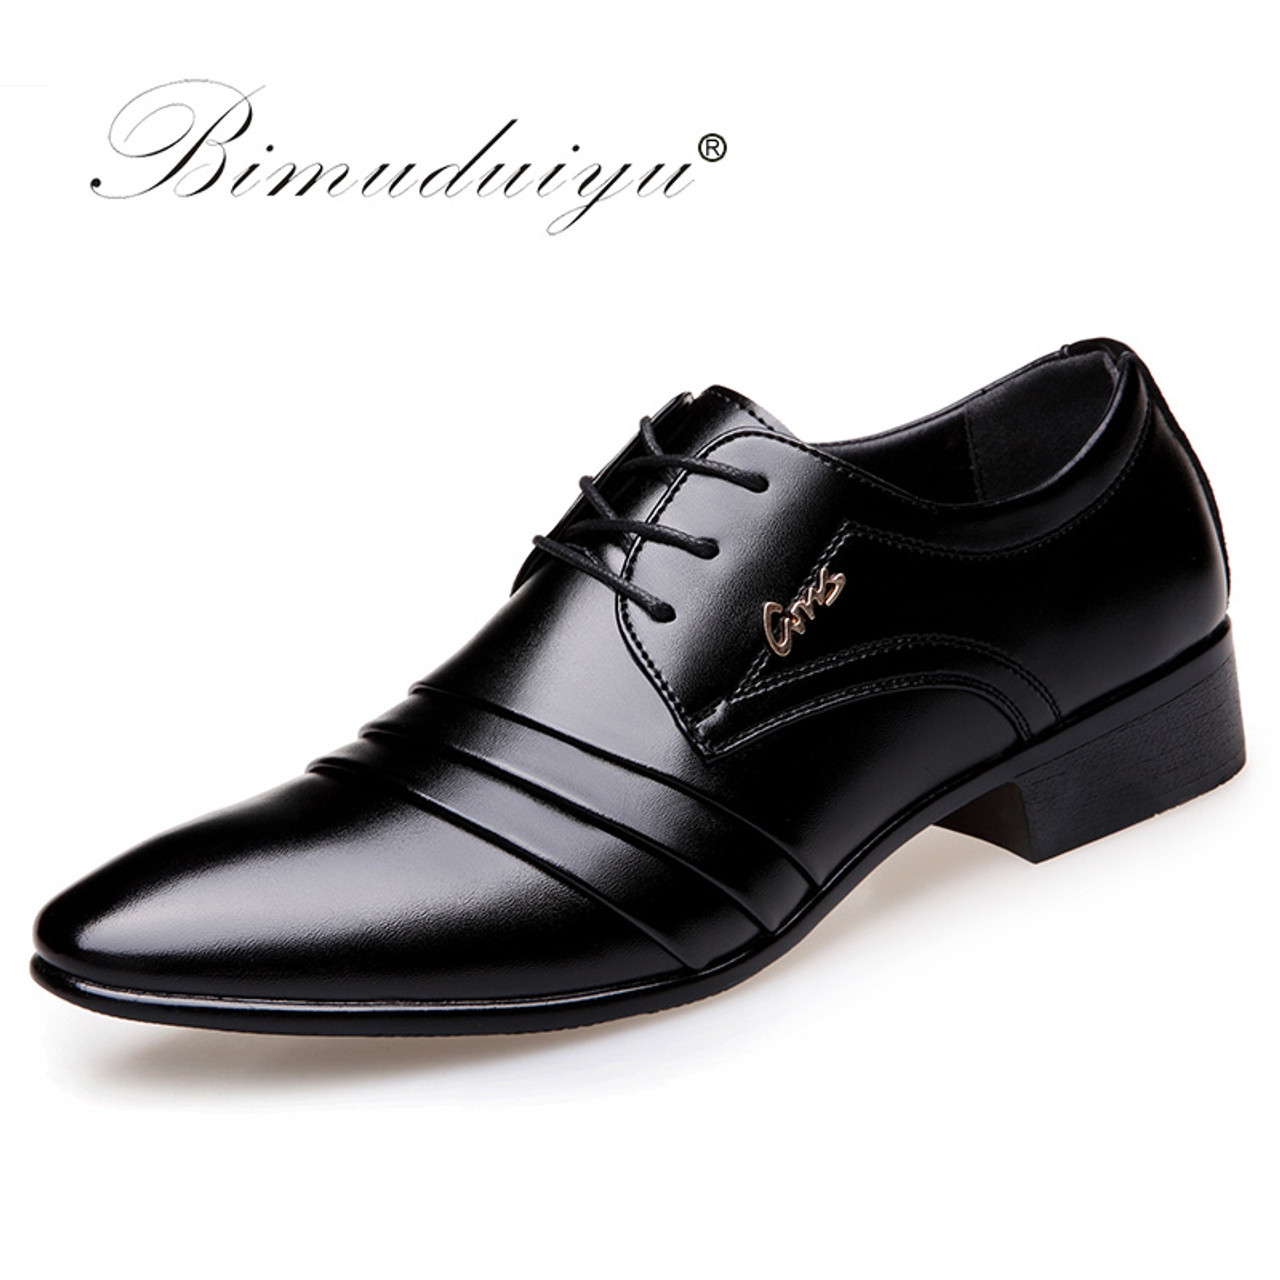 fff353dd3d8 Top Quality Men oxfords Dress Shoes Fashion Lace-up Wedding Black Shoes Mens  Pointed Toe ...